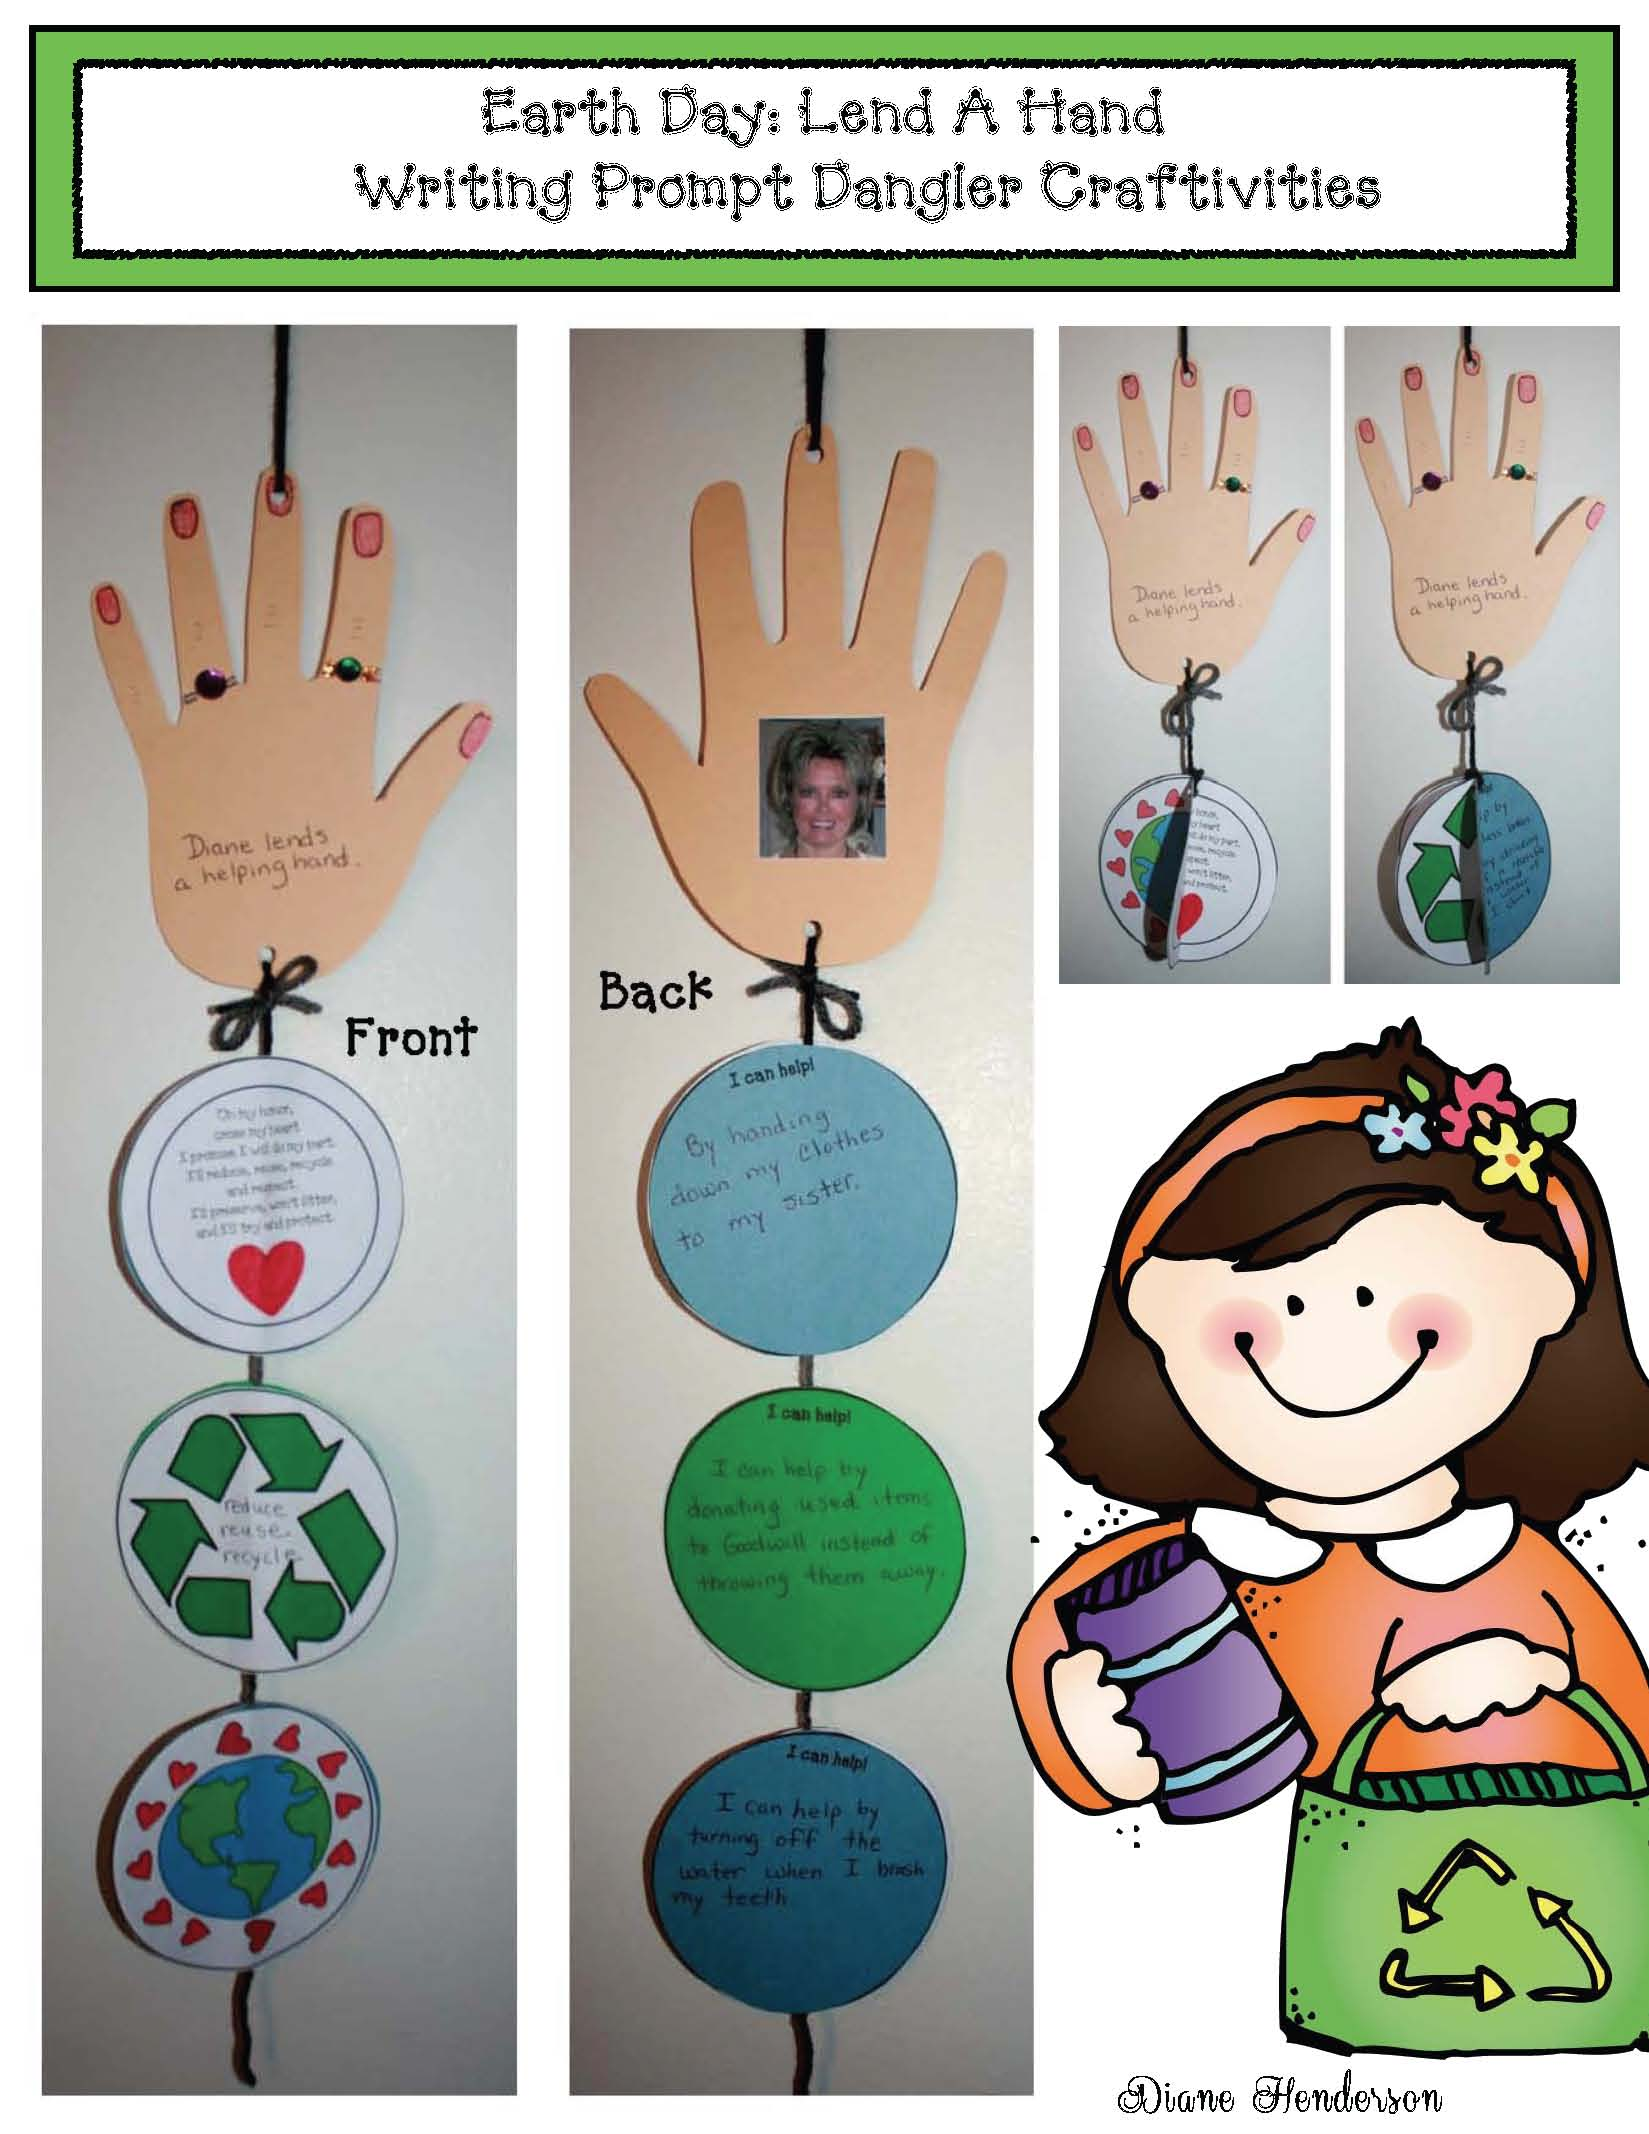 earth day crafts, earth day activities, earth day writing prompts, earth day bulletin board ideas, earth day bookmarks, free earth day, environmental footprint activities